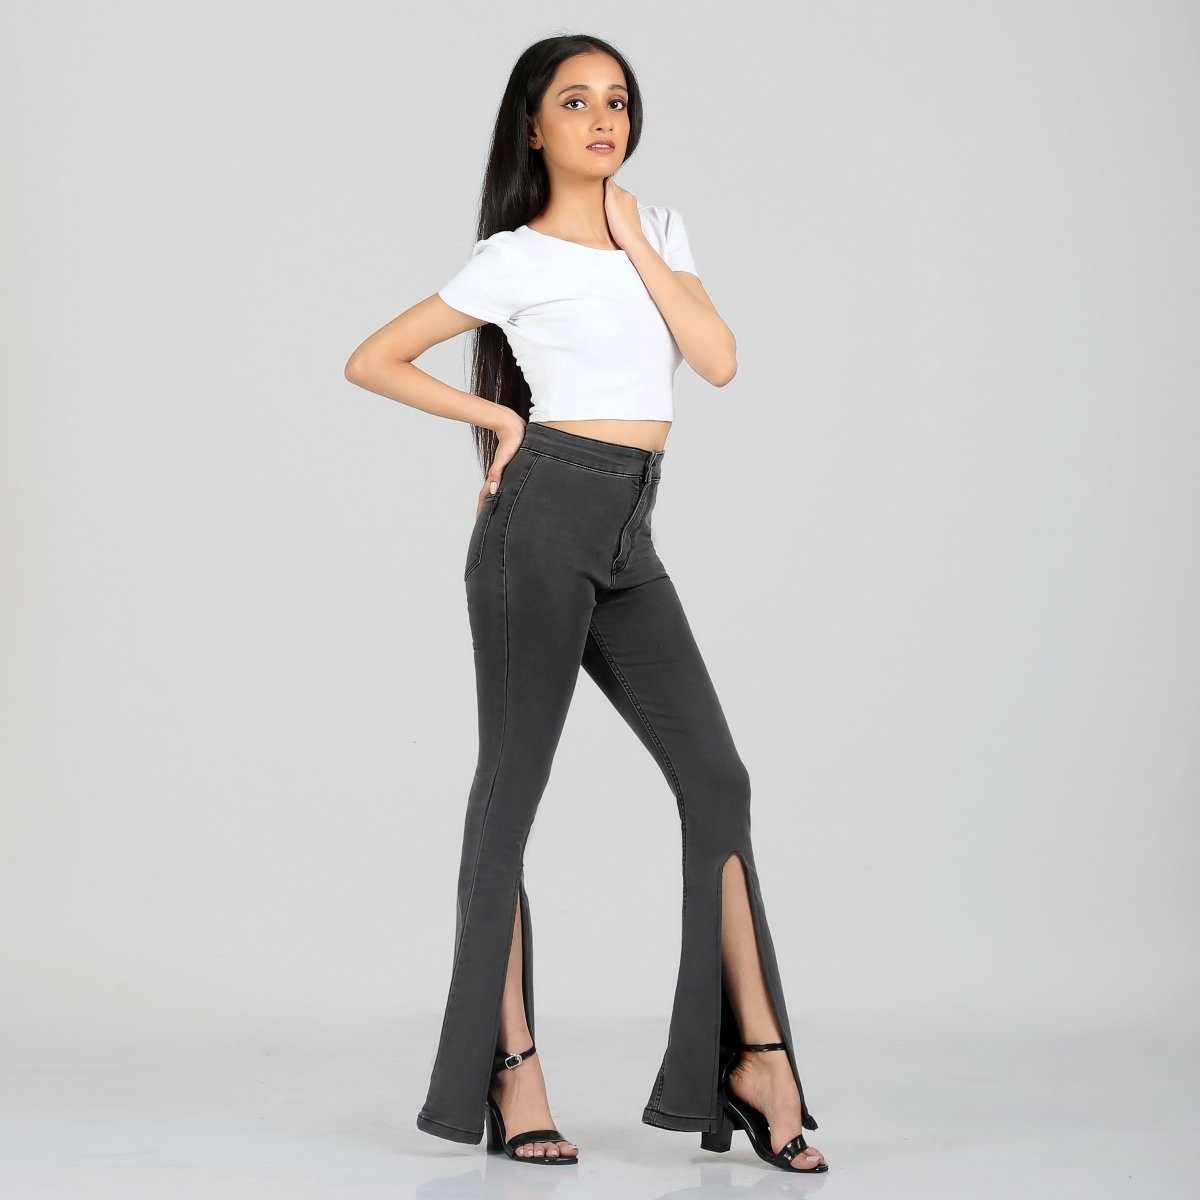 Peek-a-Boo Charcoal Bell Bottom High Waist Jeans by Madish